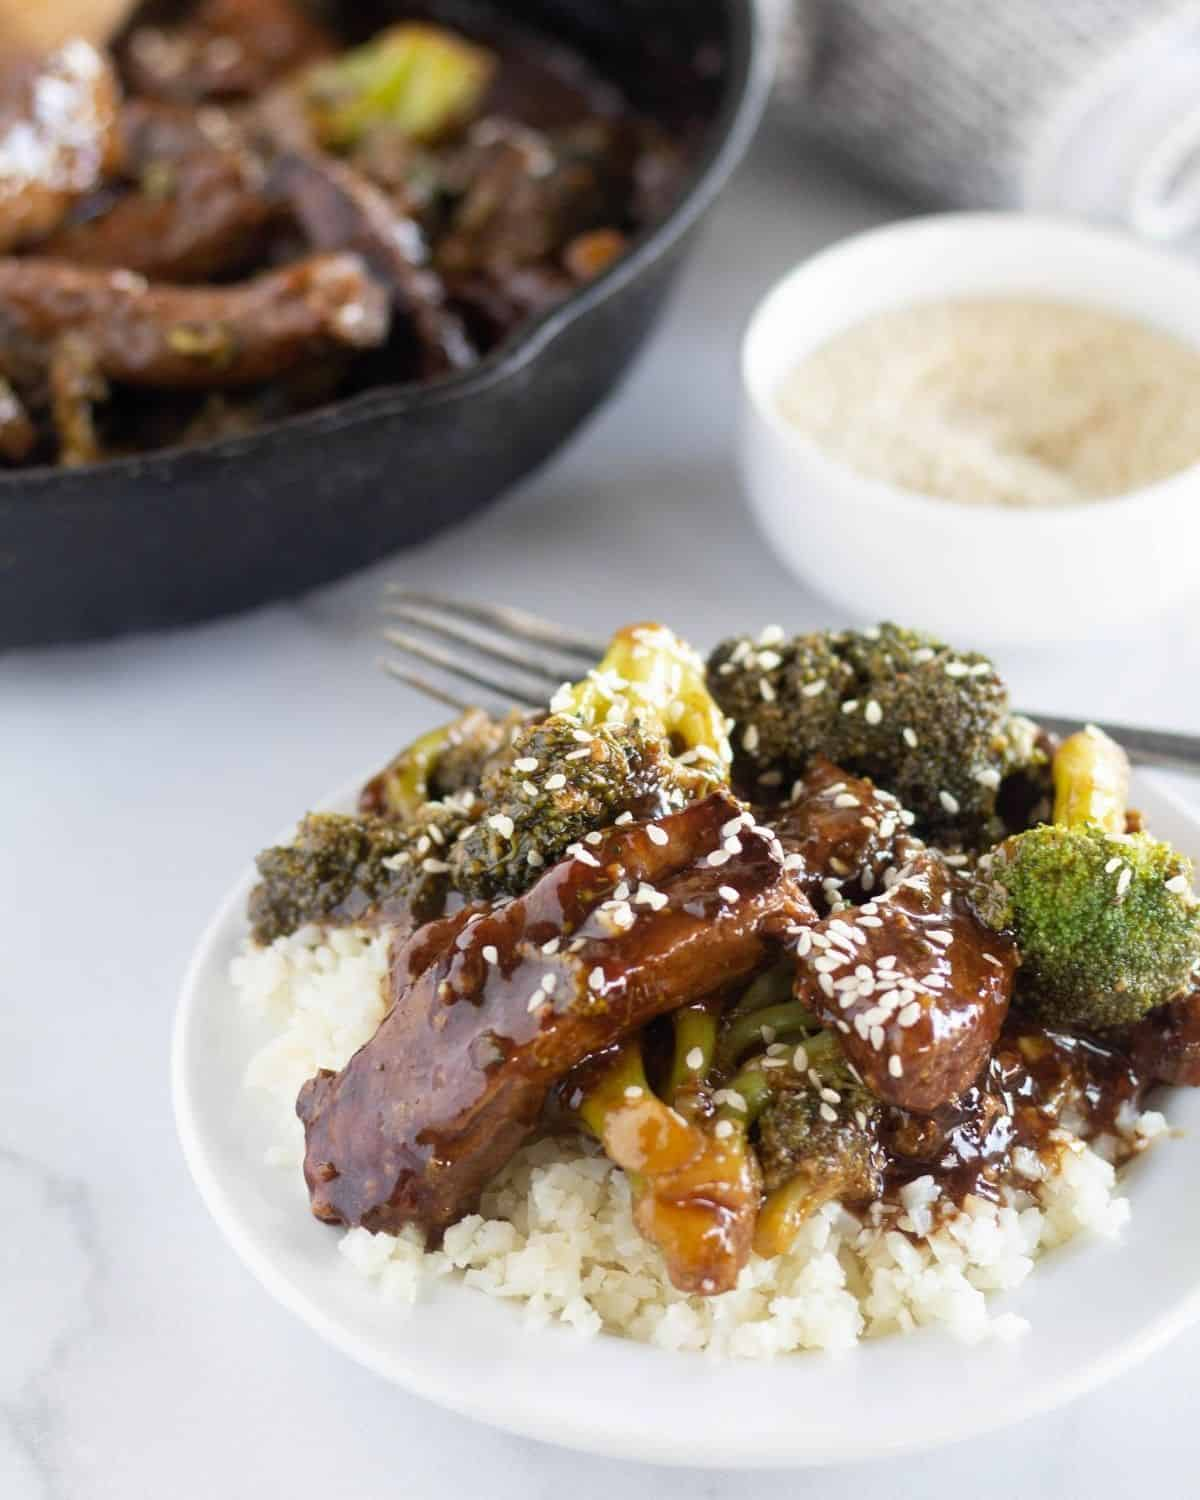 beef and broccoli on plate over cauliflower rice